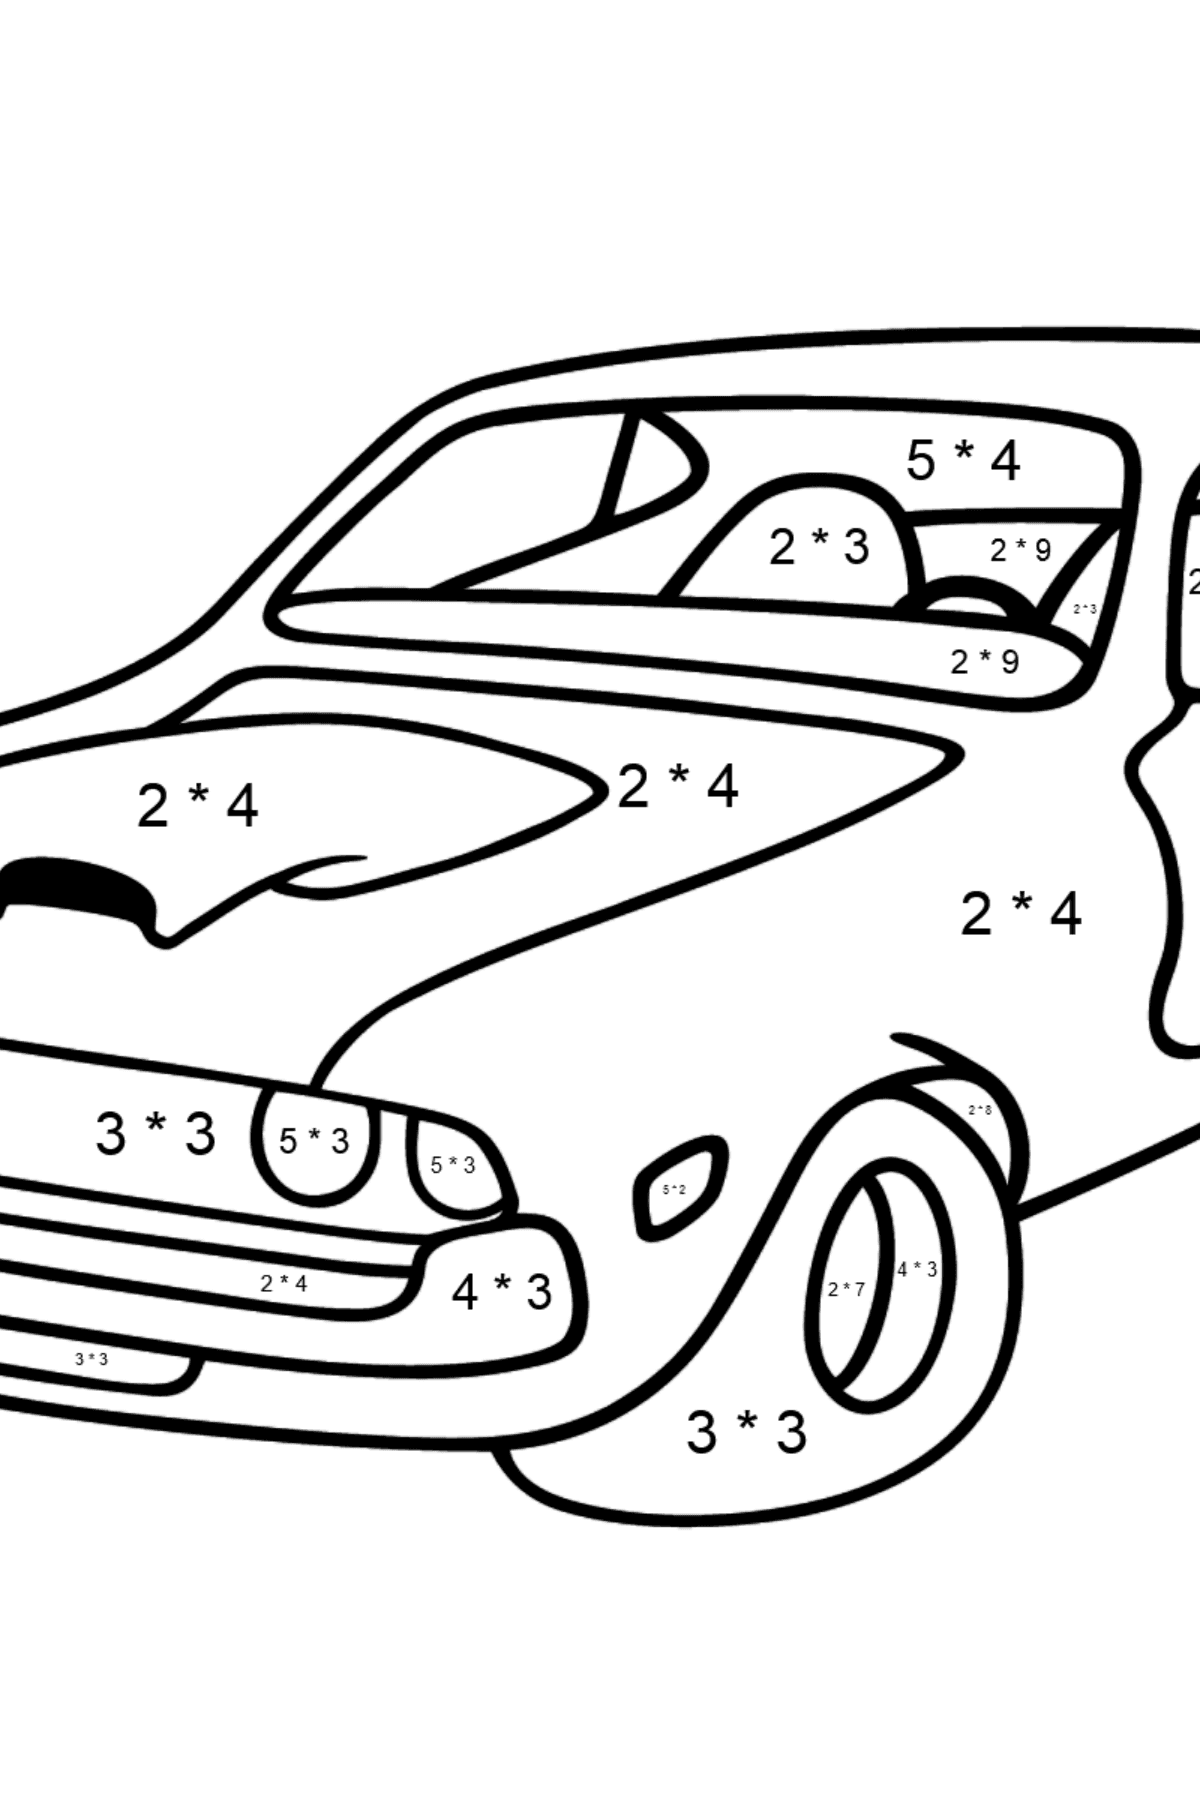 Chevrolet-Chevy Sports Car coloring page - Math Coloring - Multiplication for Kids